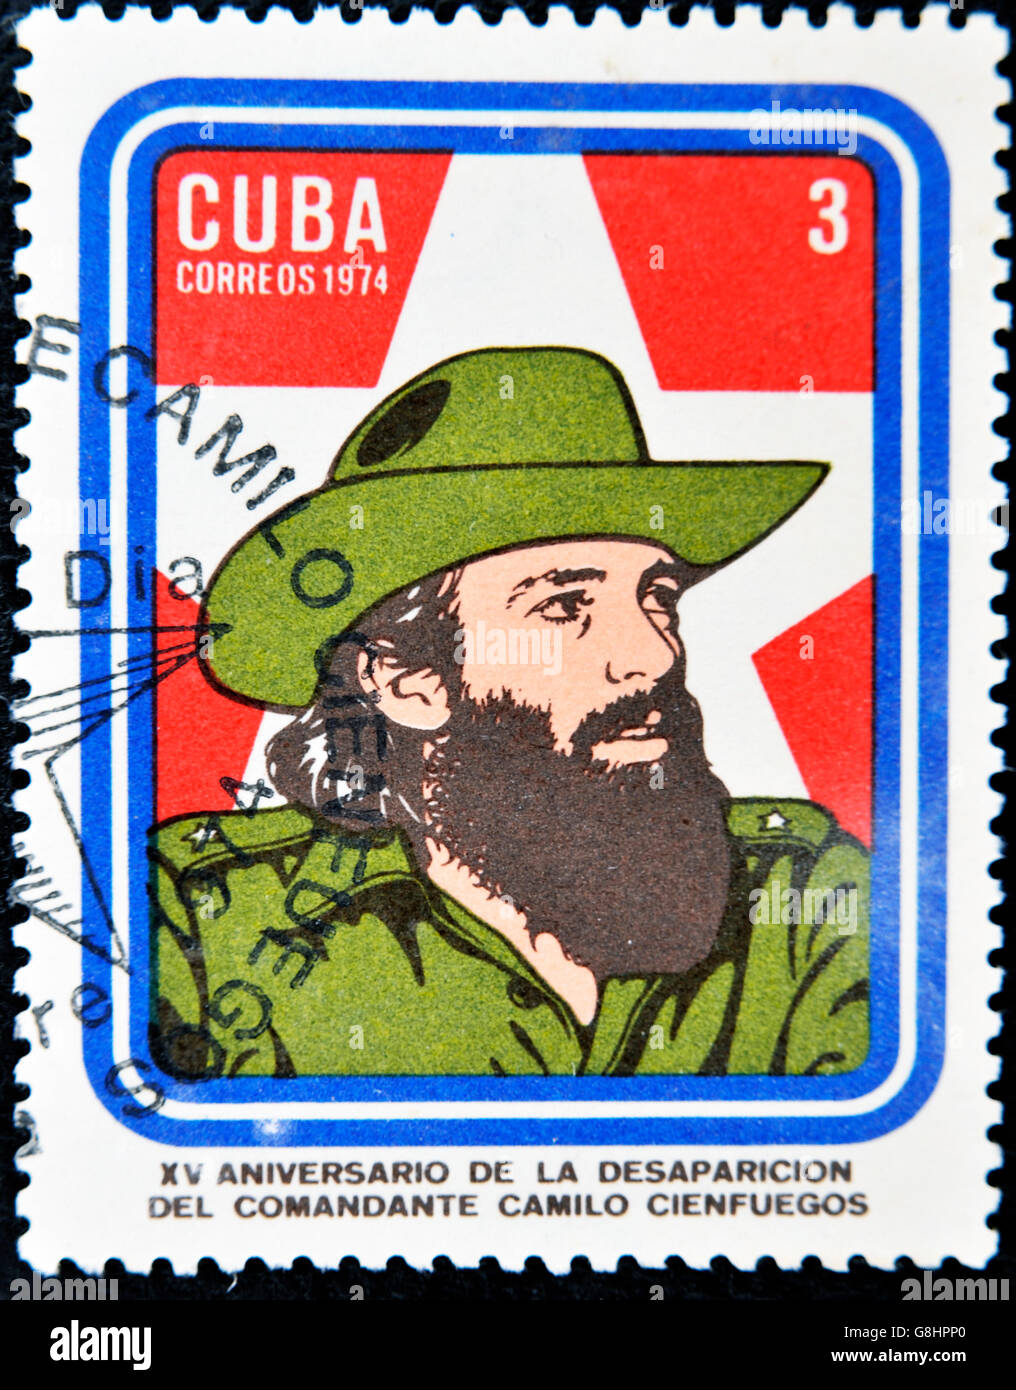 CUBA - CIRCA 1974: A Stamp printed in Cuba devoted 15 years of disappearance of Comandante Camilo Cienfuegos, circa - Stock Image